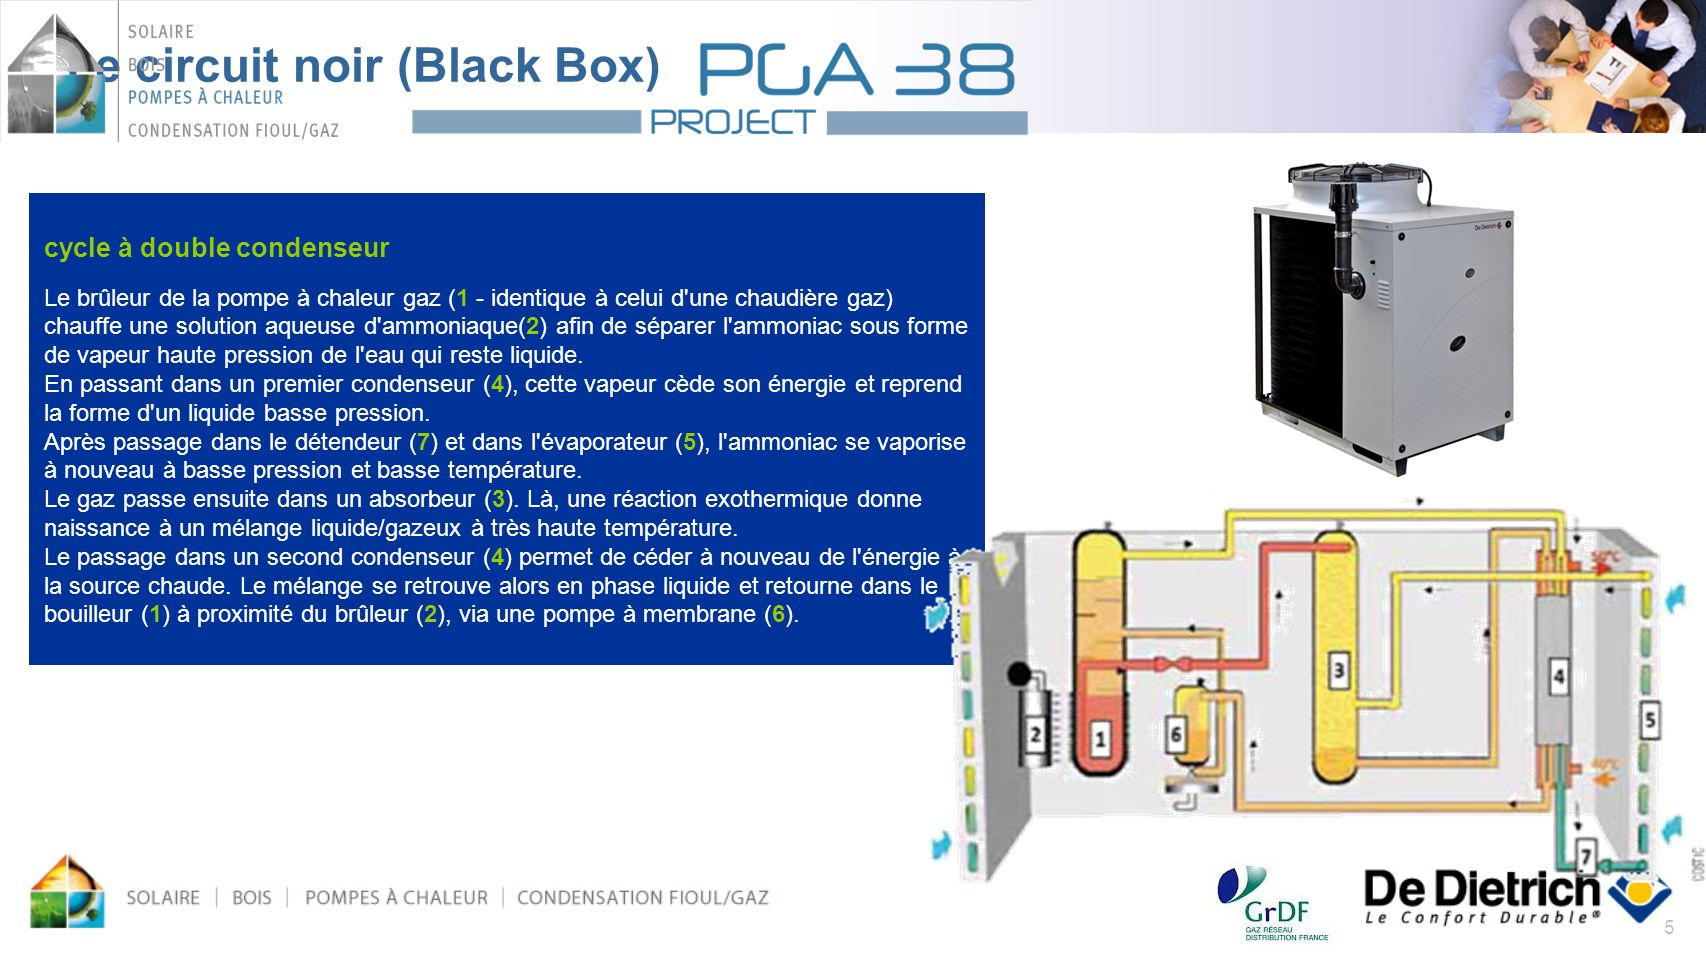 Le circuit noir (Black Box)